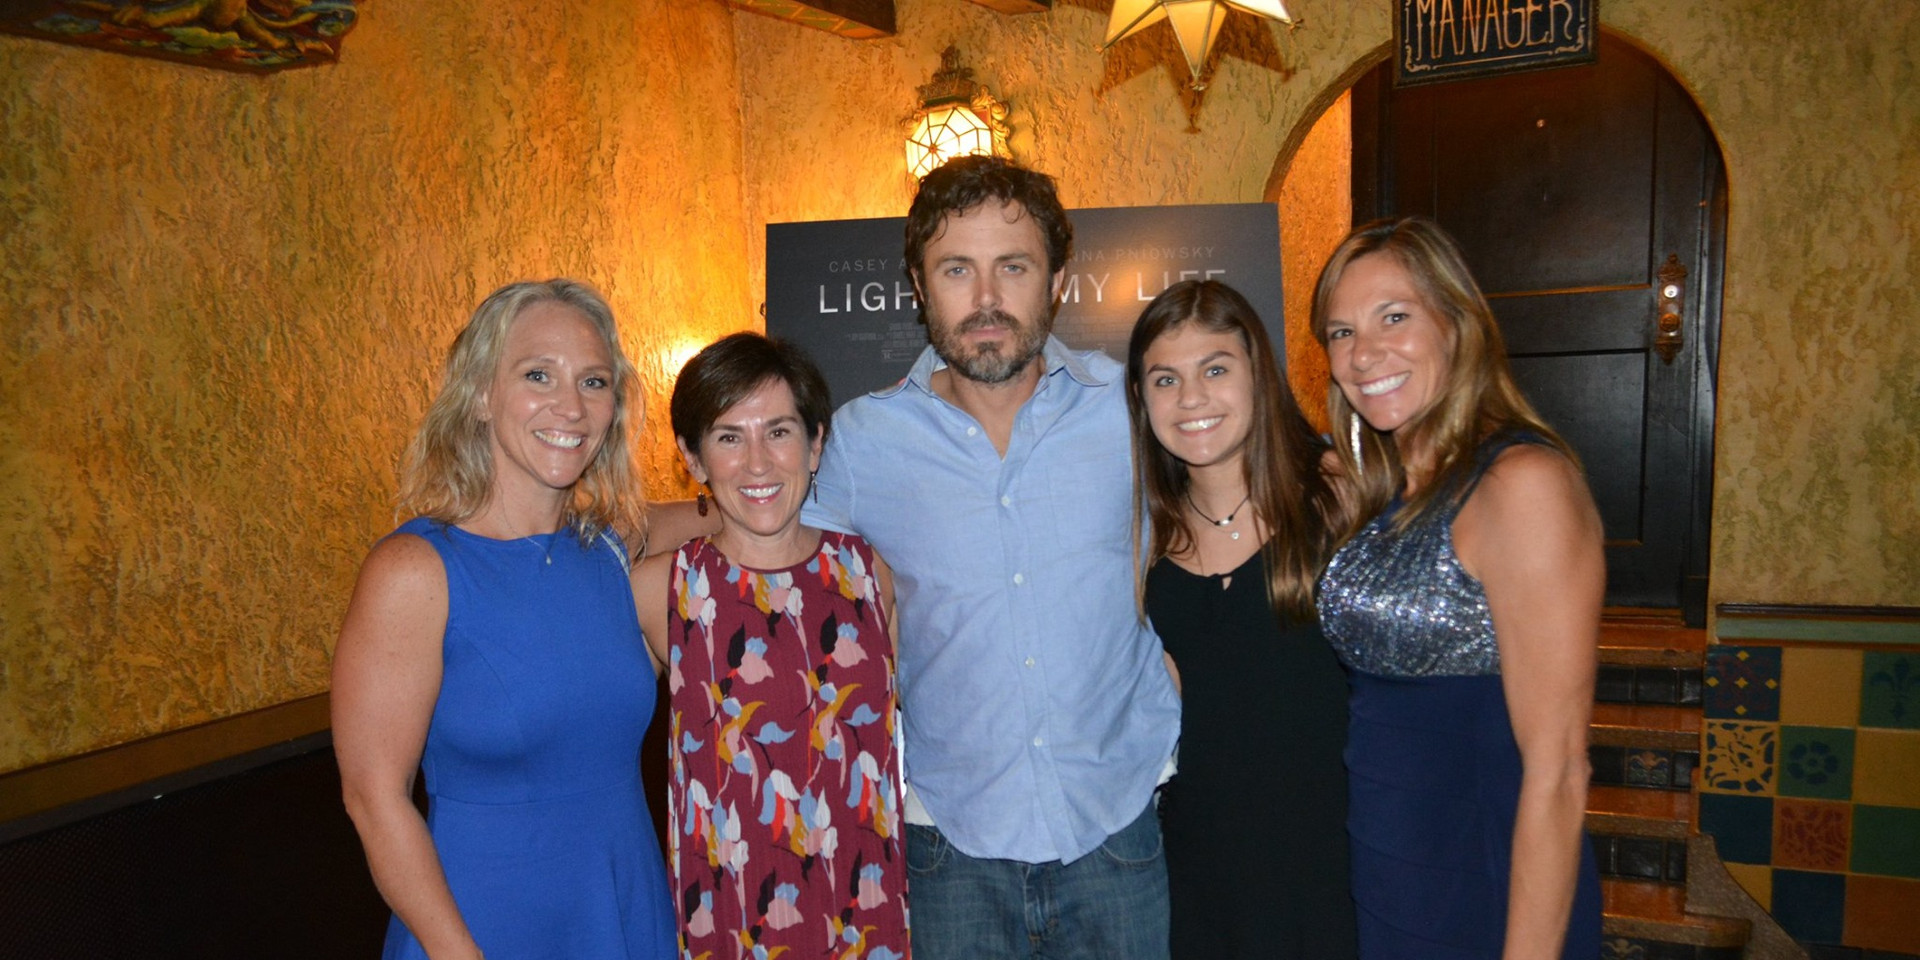 LIGHT OF MY LIFE TAMPA VETERANS EXCLUSIVE SCREENING